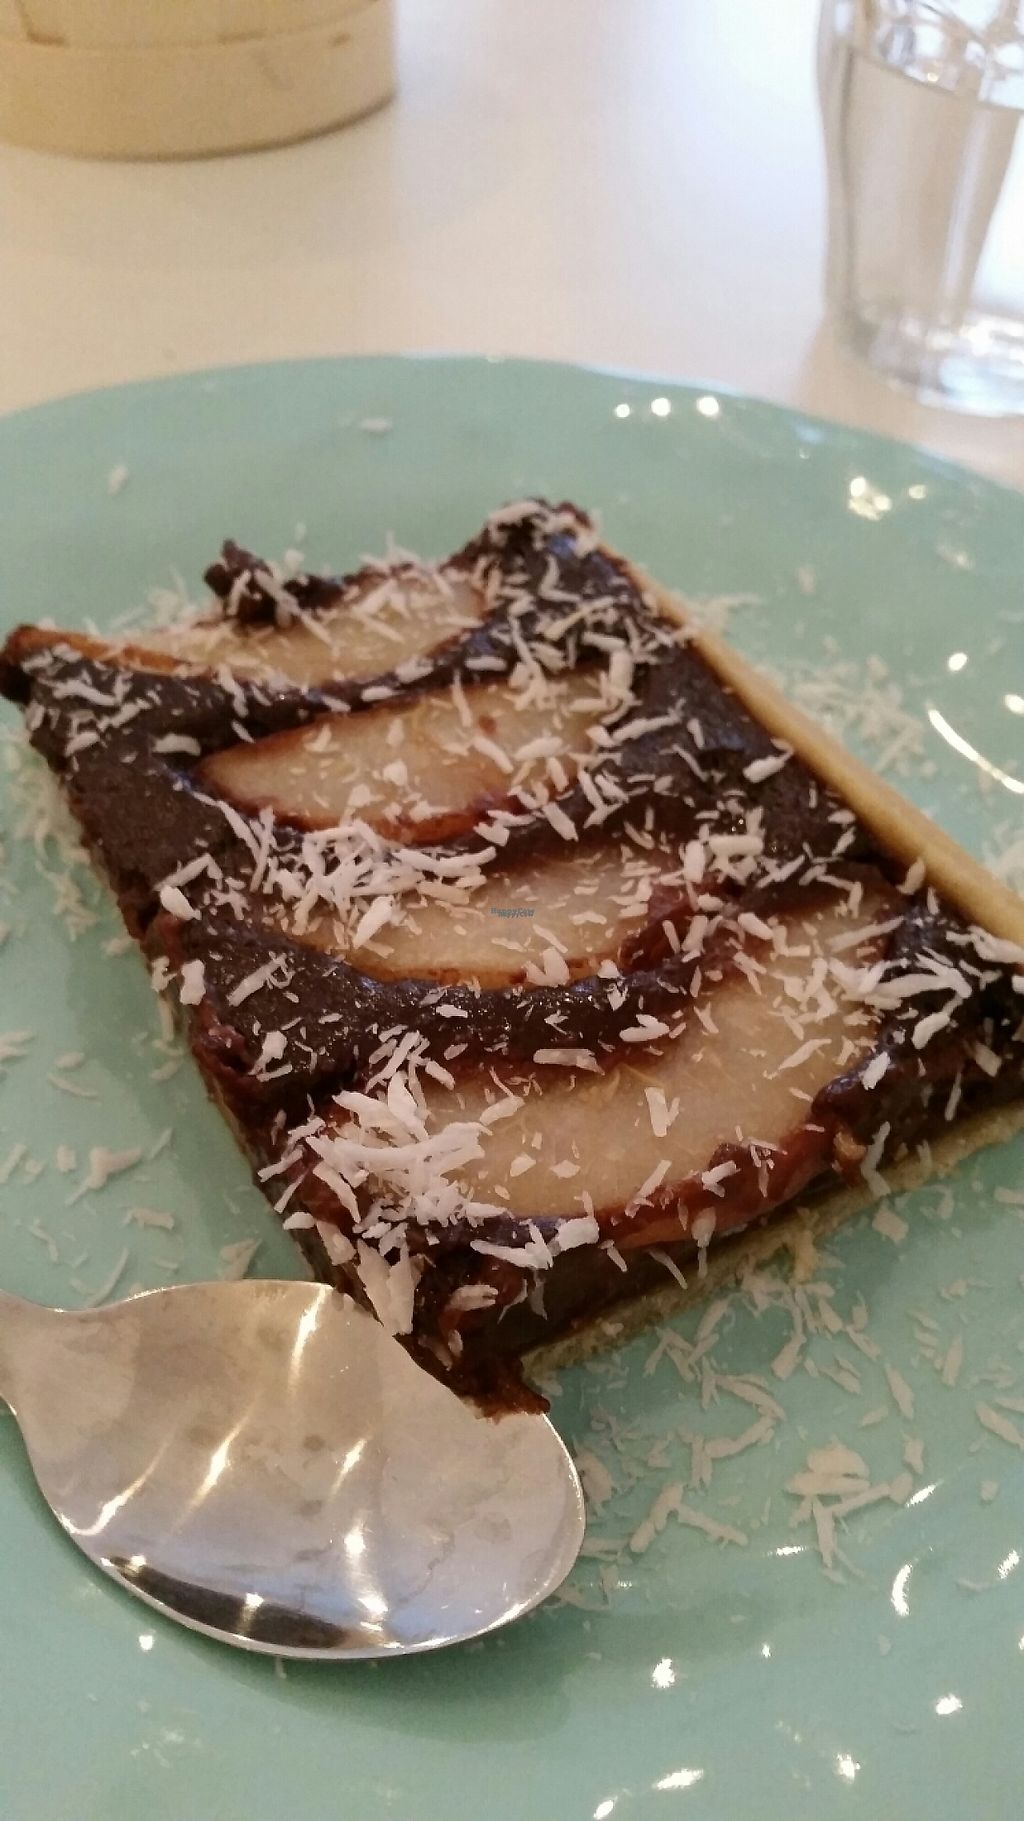 """Photo of Les P'tits Poissons Verts  by <a href=""""/members/profile/ChantalW"""">ChantalW</a> <br/>chocolate and pear tart <br/> March 25, 2017  - <a href='/contact/abuse/image/82420/240533'>Report</a>"""